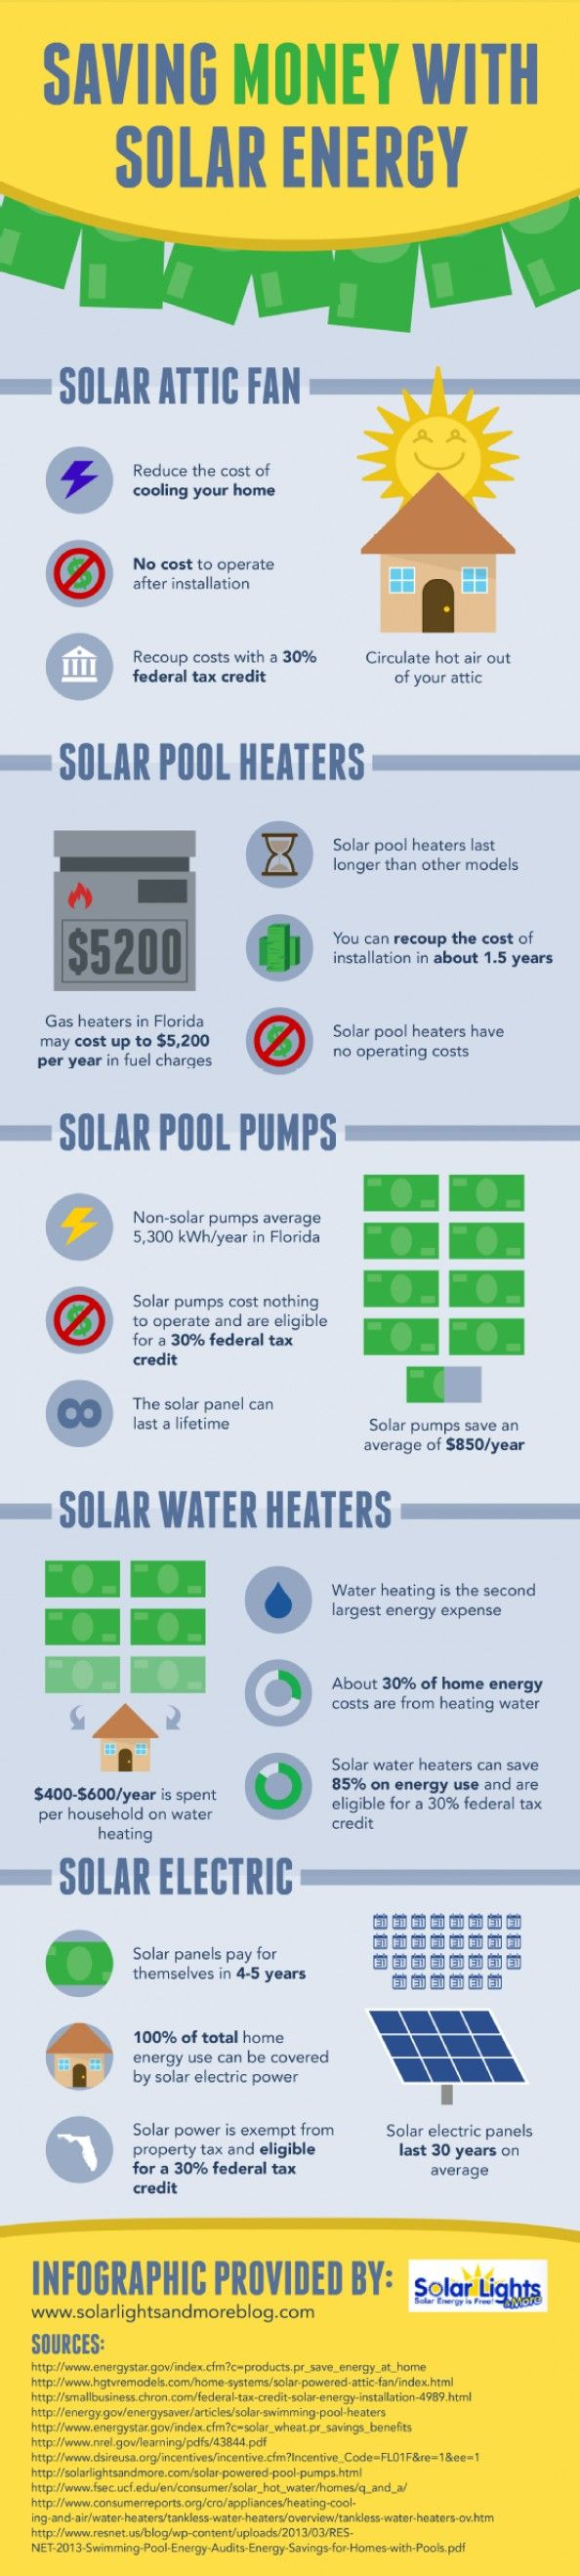 349 Best Images About Renewable Energy On Pinterest